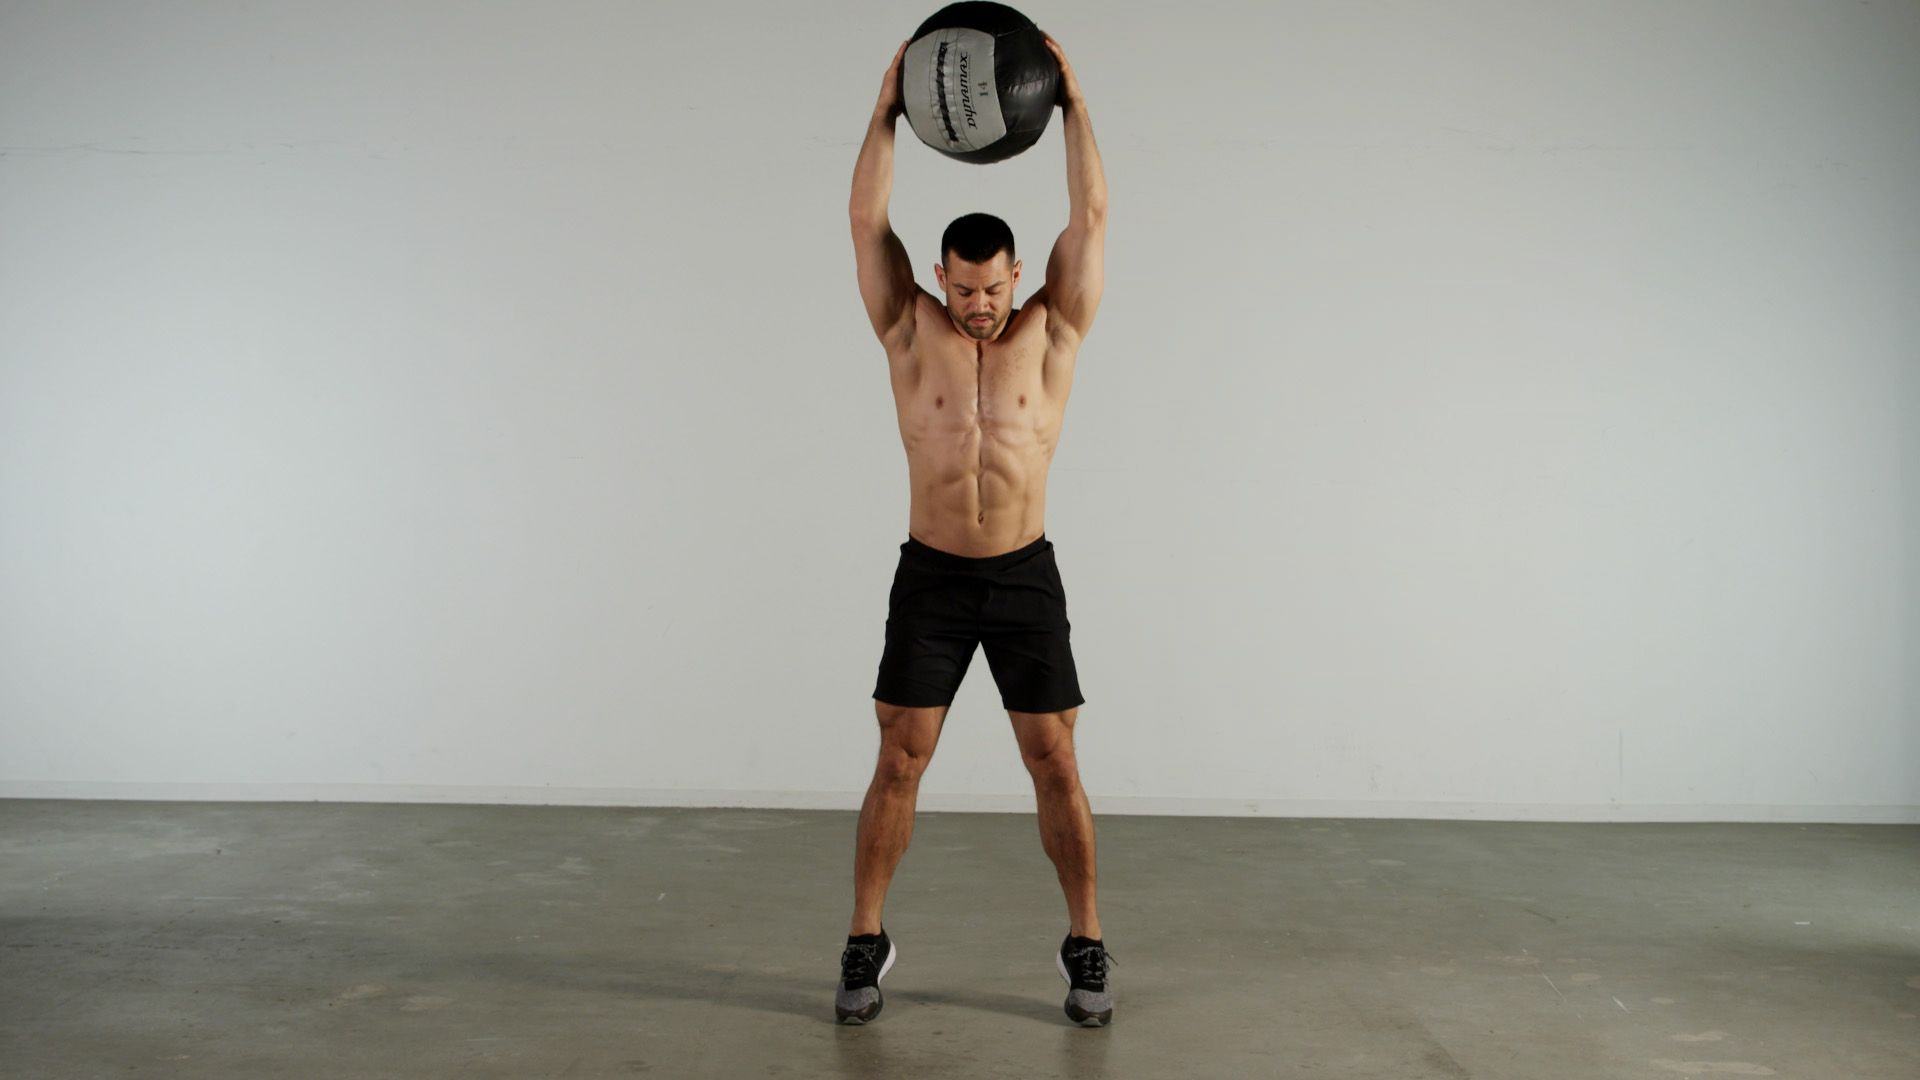 This Challenging Medicine Ball Burner Will Put Your Core to the Test